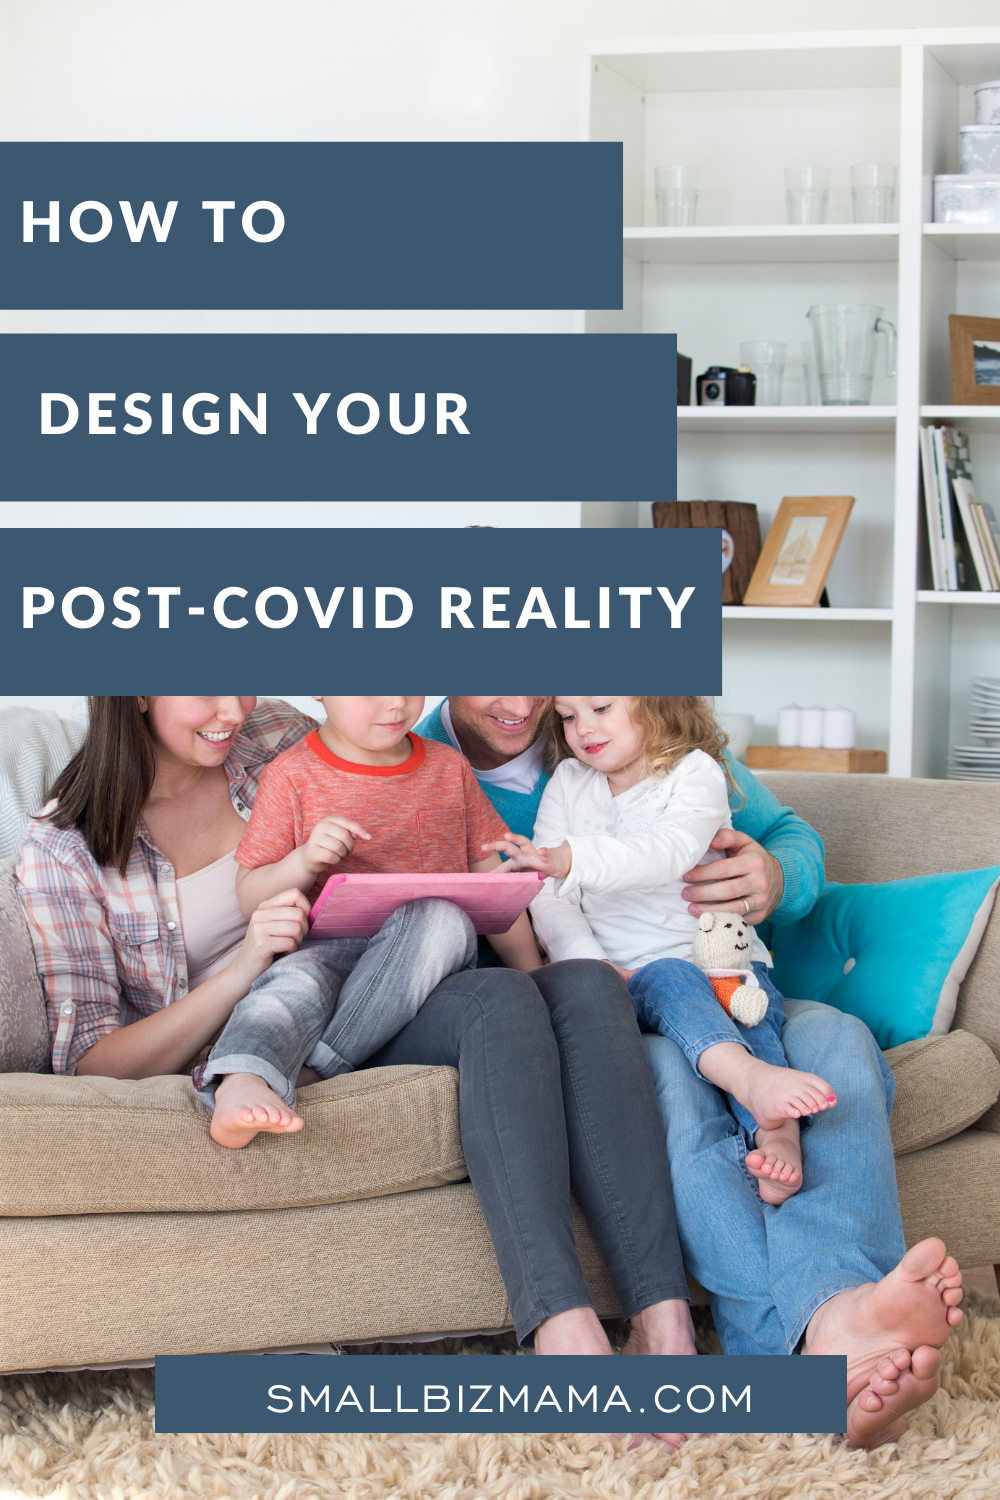 How to design your post-Covid reality